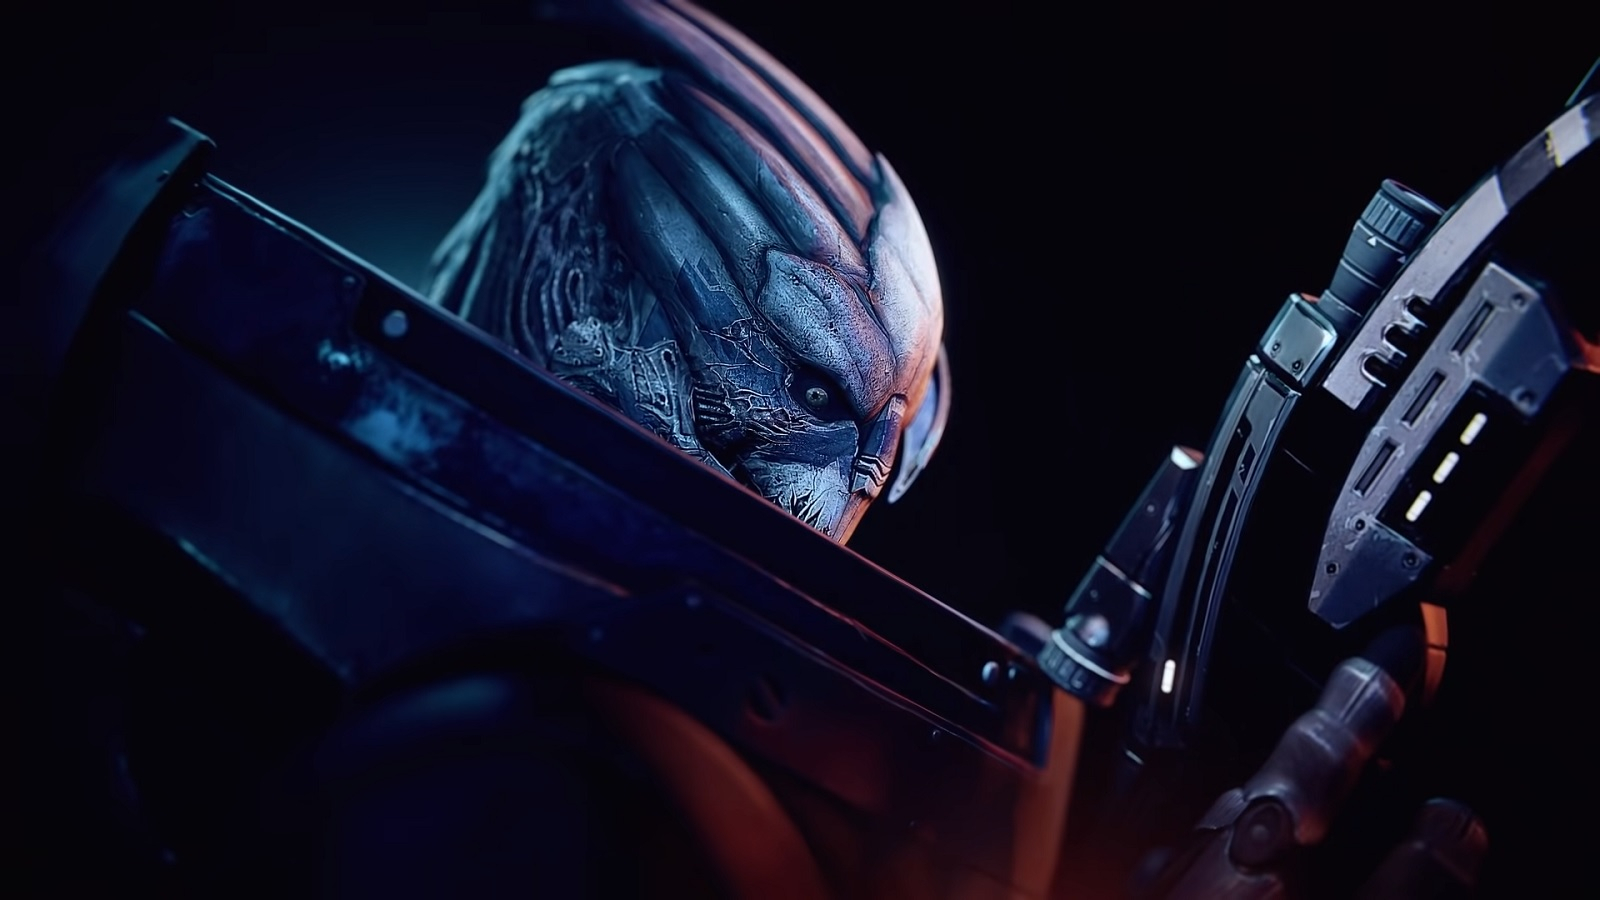 Калибровка не потребуется: Electronic Arts раскрыла системные требования Mass Effect Legendary Edition